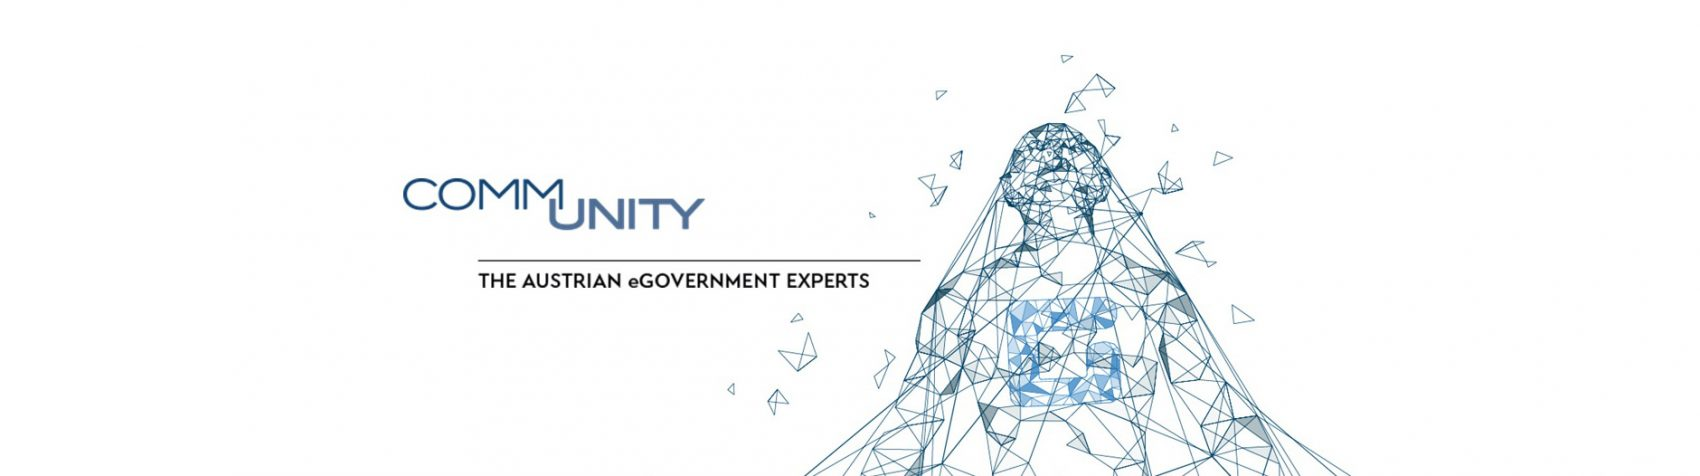 COMM-UNITY The Austrian eGovernment Experts